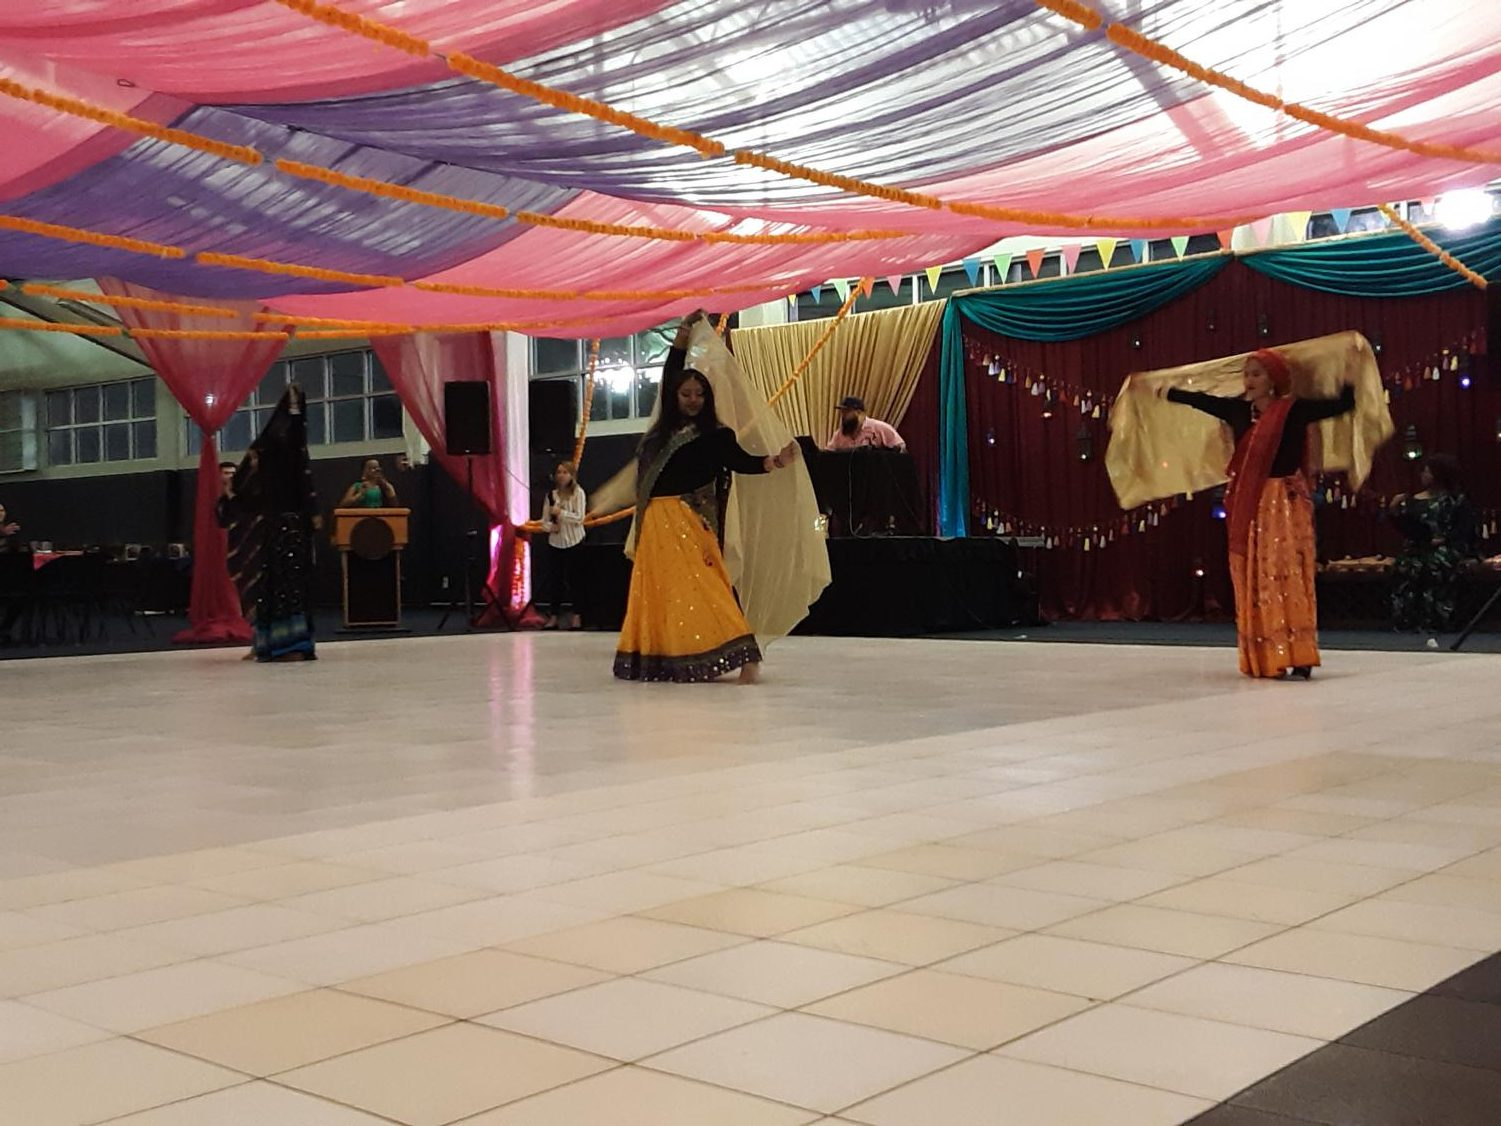 The+final+dance+of+the+evening+was+called+Bollywood+Baddies%3A+Bhangra+Fusion+Dance